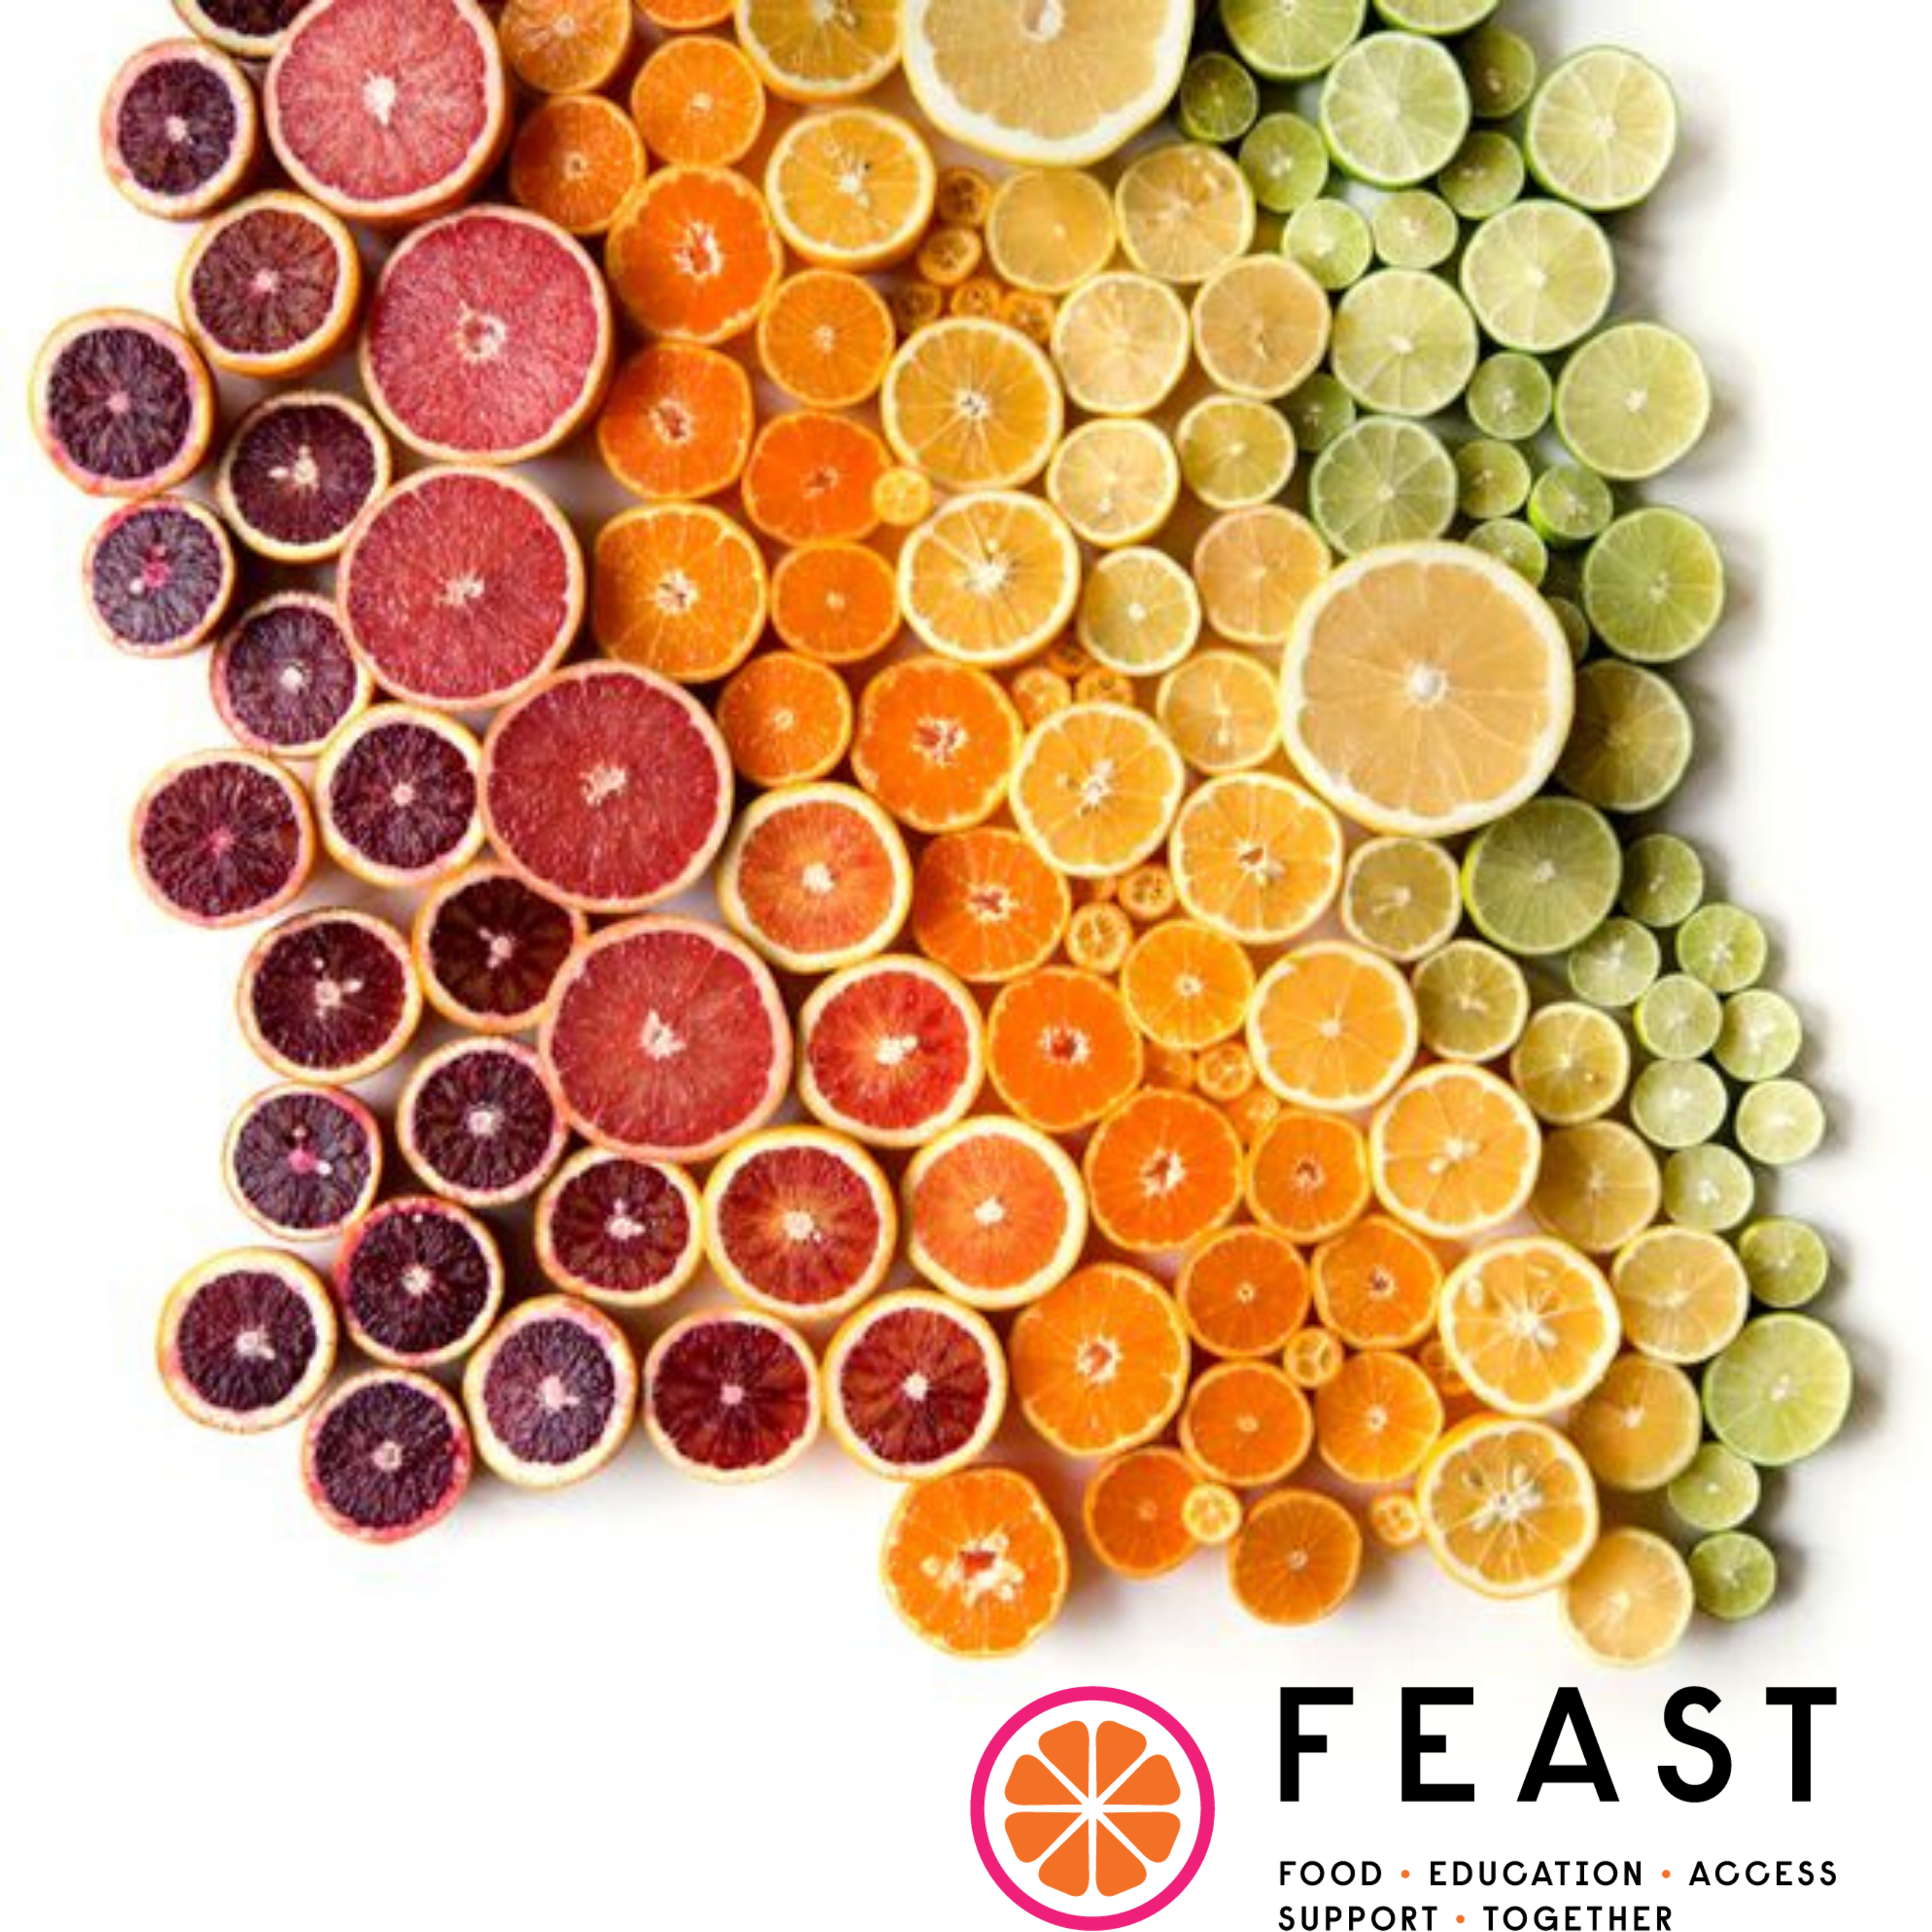 A Night In With FEAST: A Virtual Cook-Along for Good